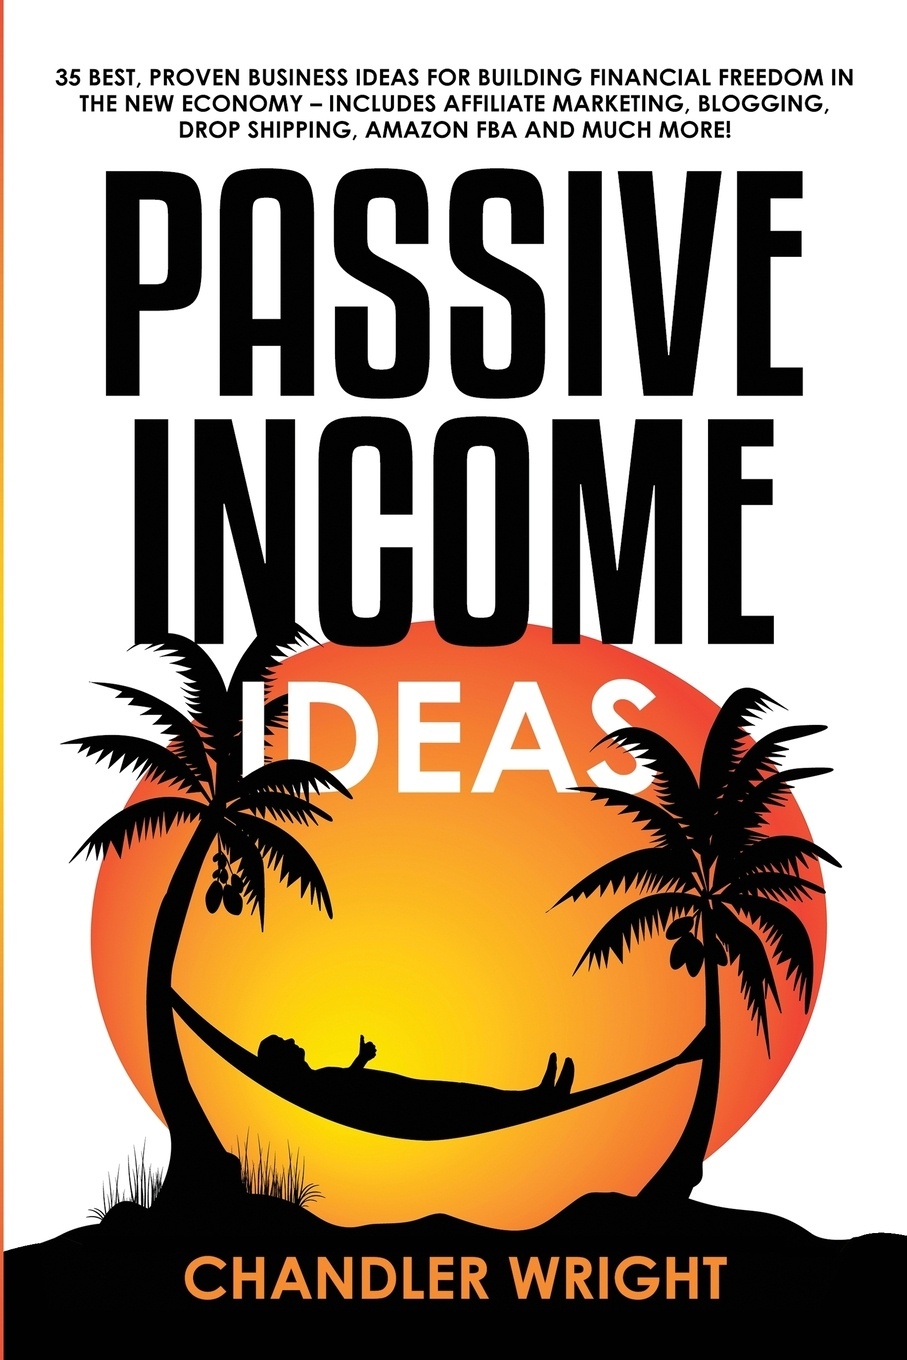 Chandler Wright Passive Income. Ideas - 35 Best, Proven Business Ideas for Building Financial Freedom in the New Economy - Includes Affiliate Marketing, Blogging, Dropshipping and Much More! harvey reese how to license your million dollar idea cash in on your inventions new product ideas software web business ideas and more